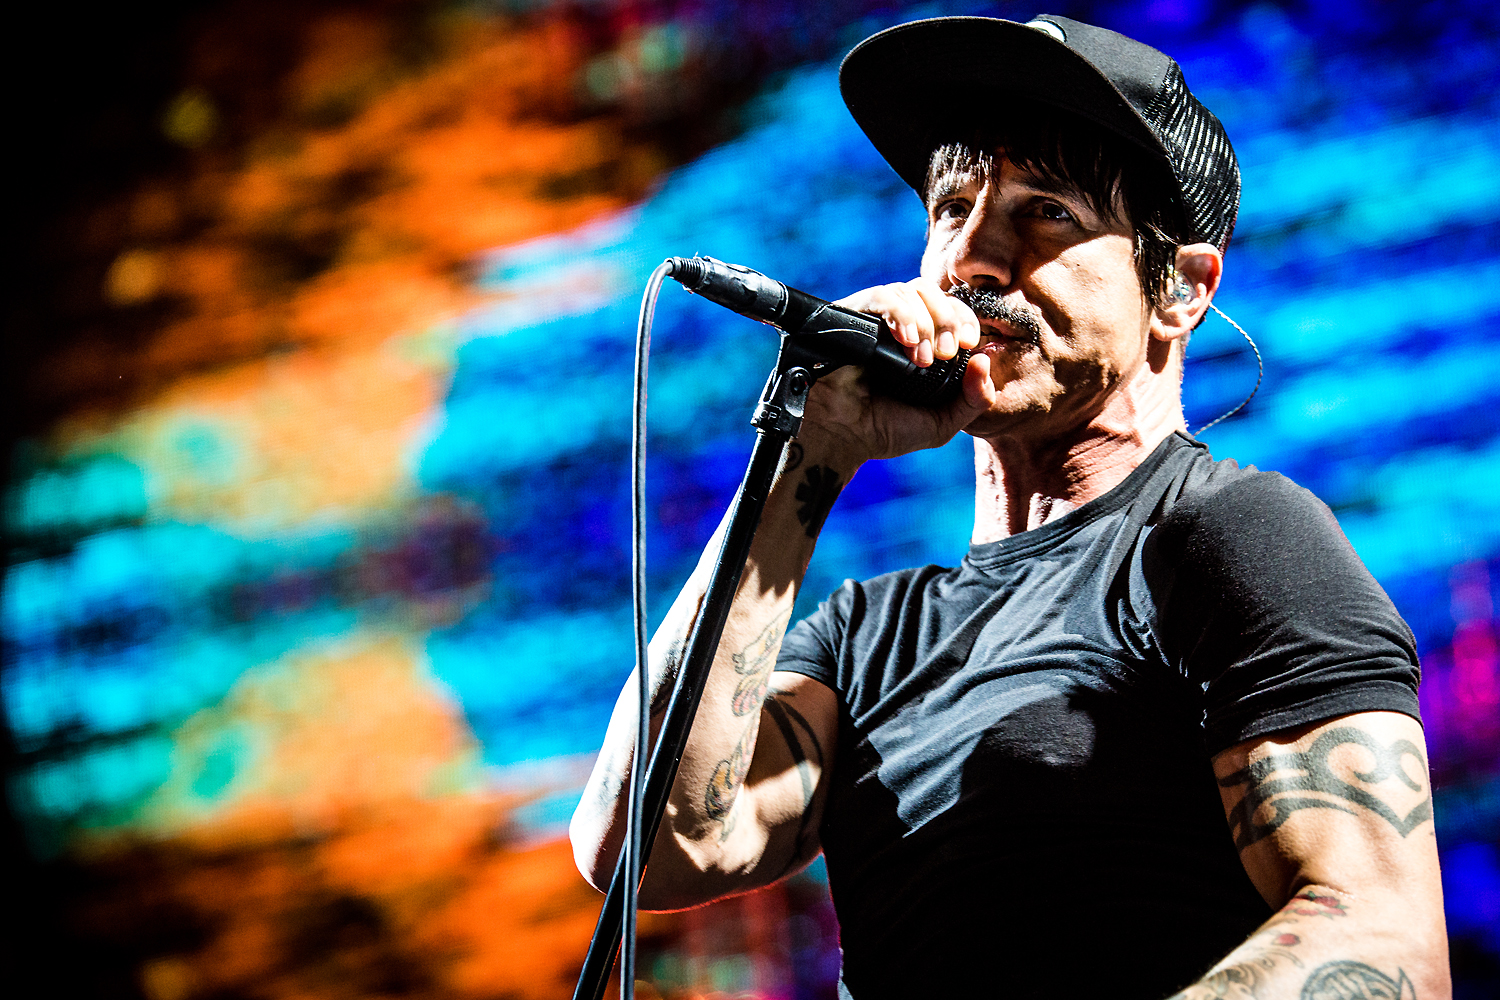 Red Hot Chili Peppers @ Sportpaleis Antwerpen 2016 (Jan Van den Bulck)